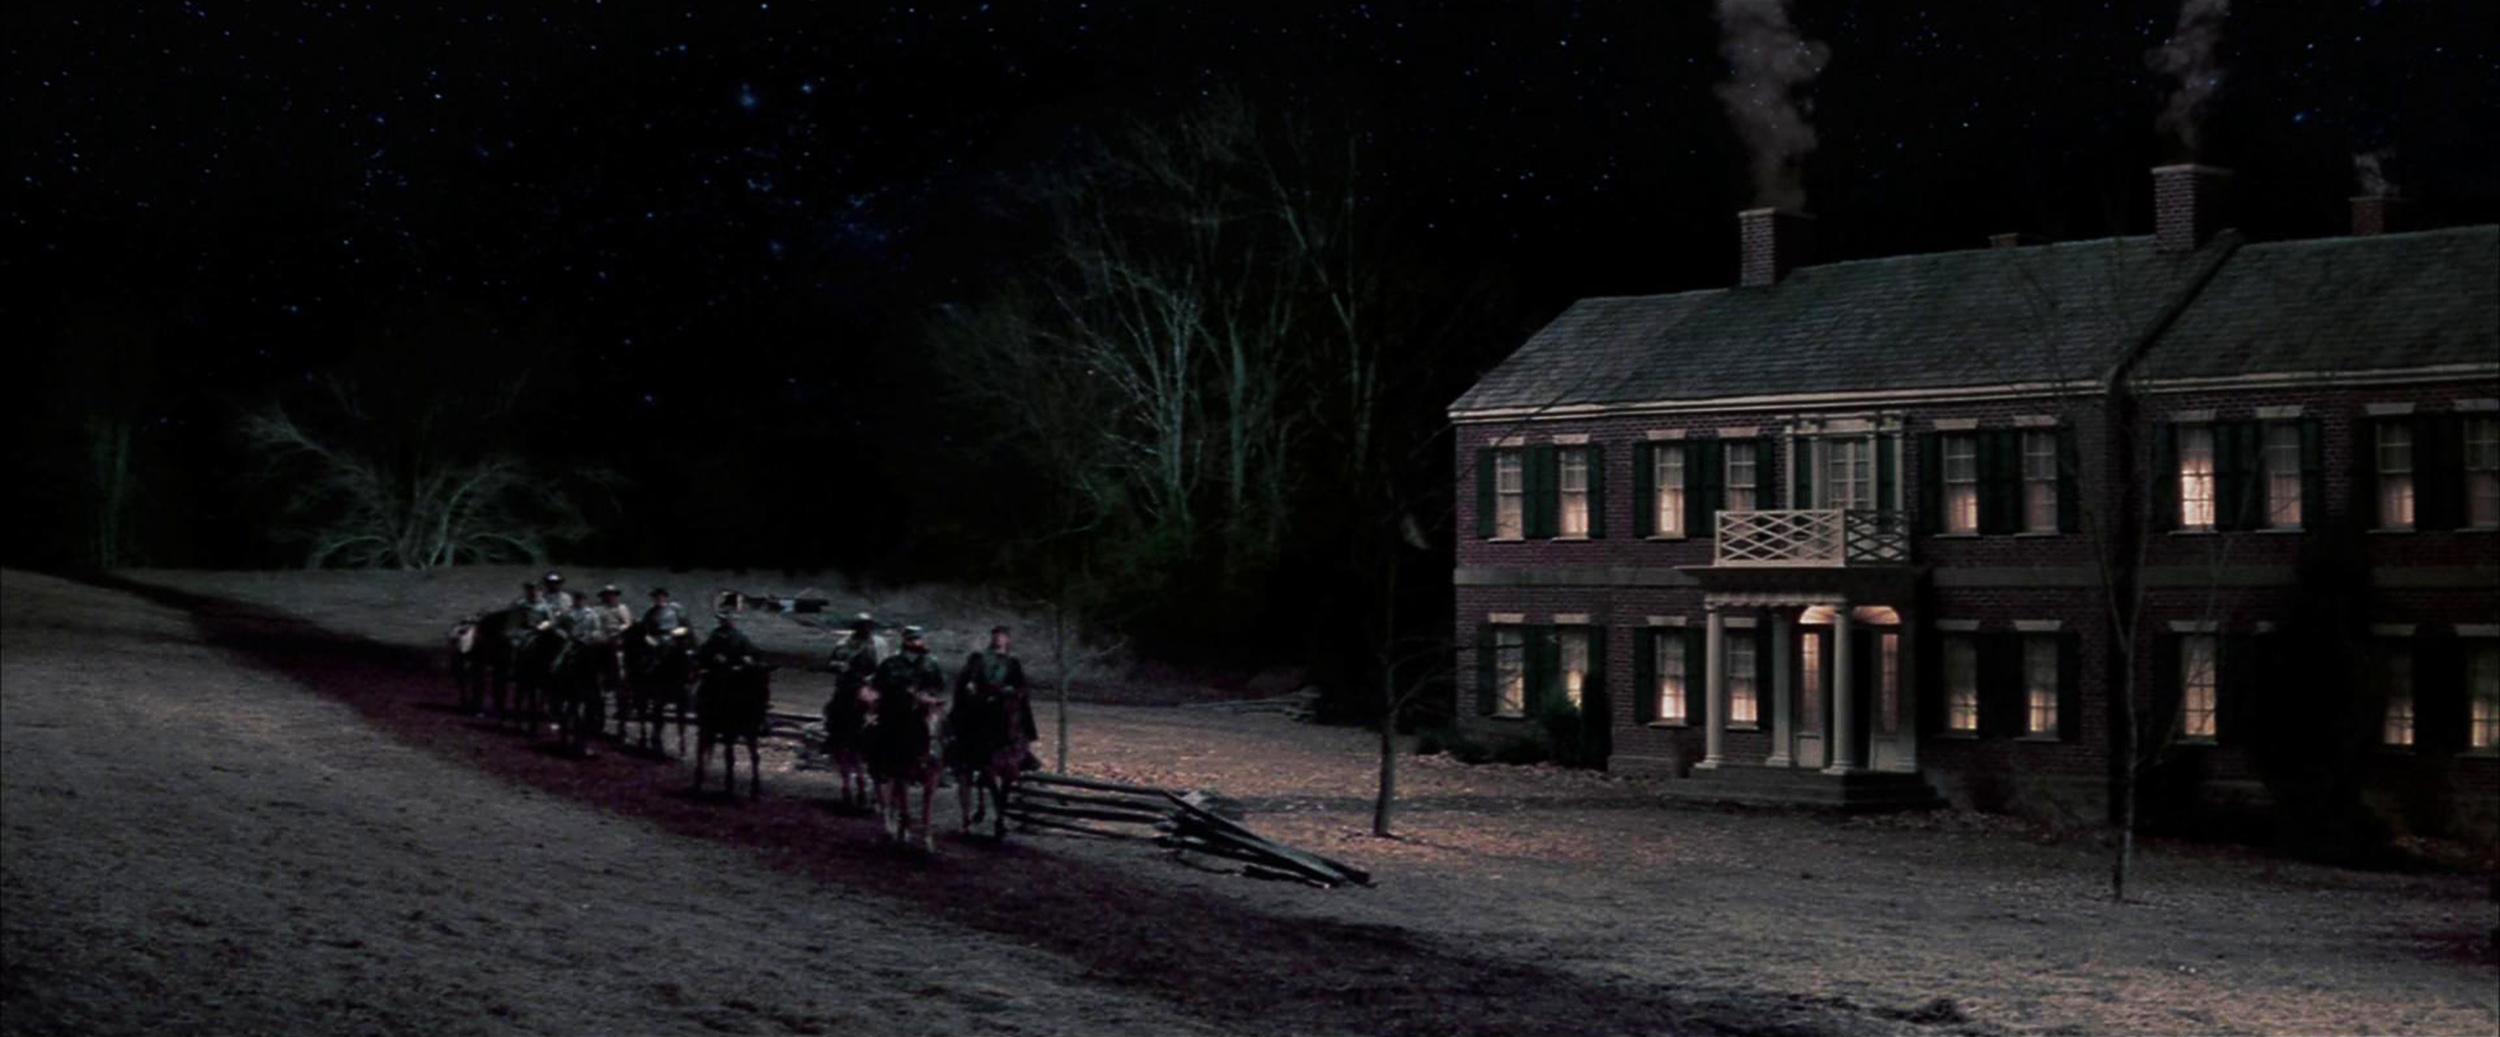 This is the same set at night before the Union Army occupied it. I built this area near several of our battlefields to help consolidate the movie in terms of moving and locations.